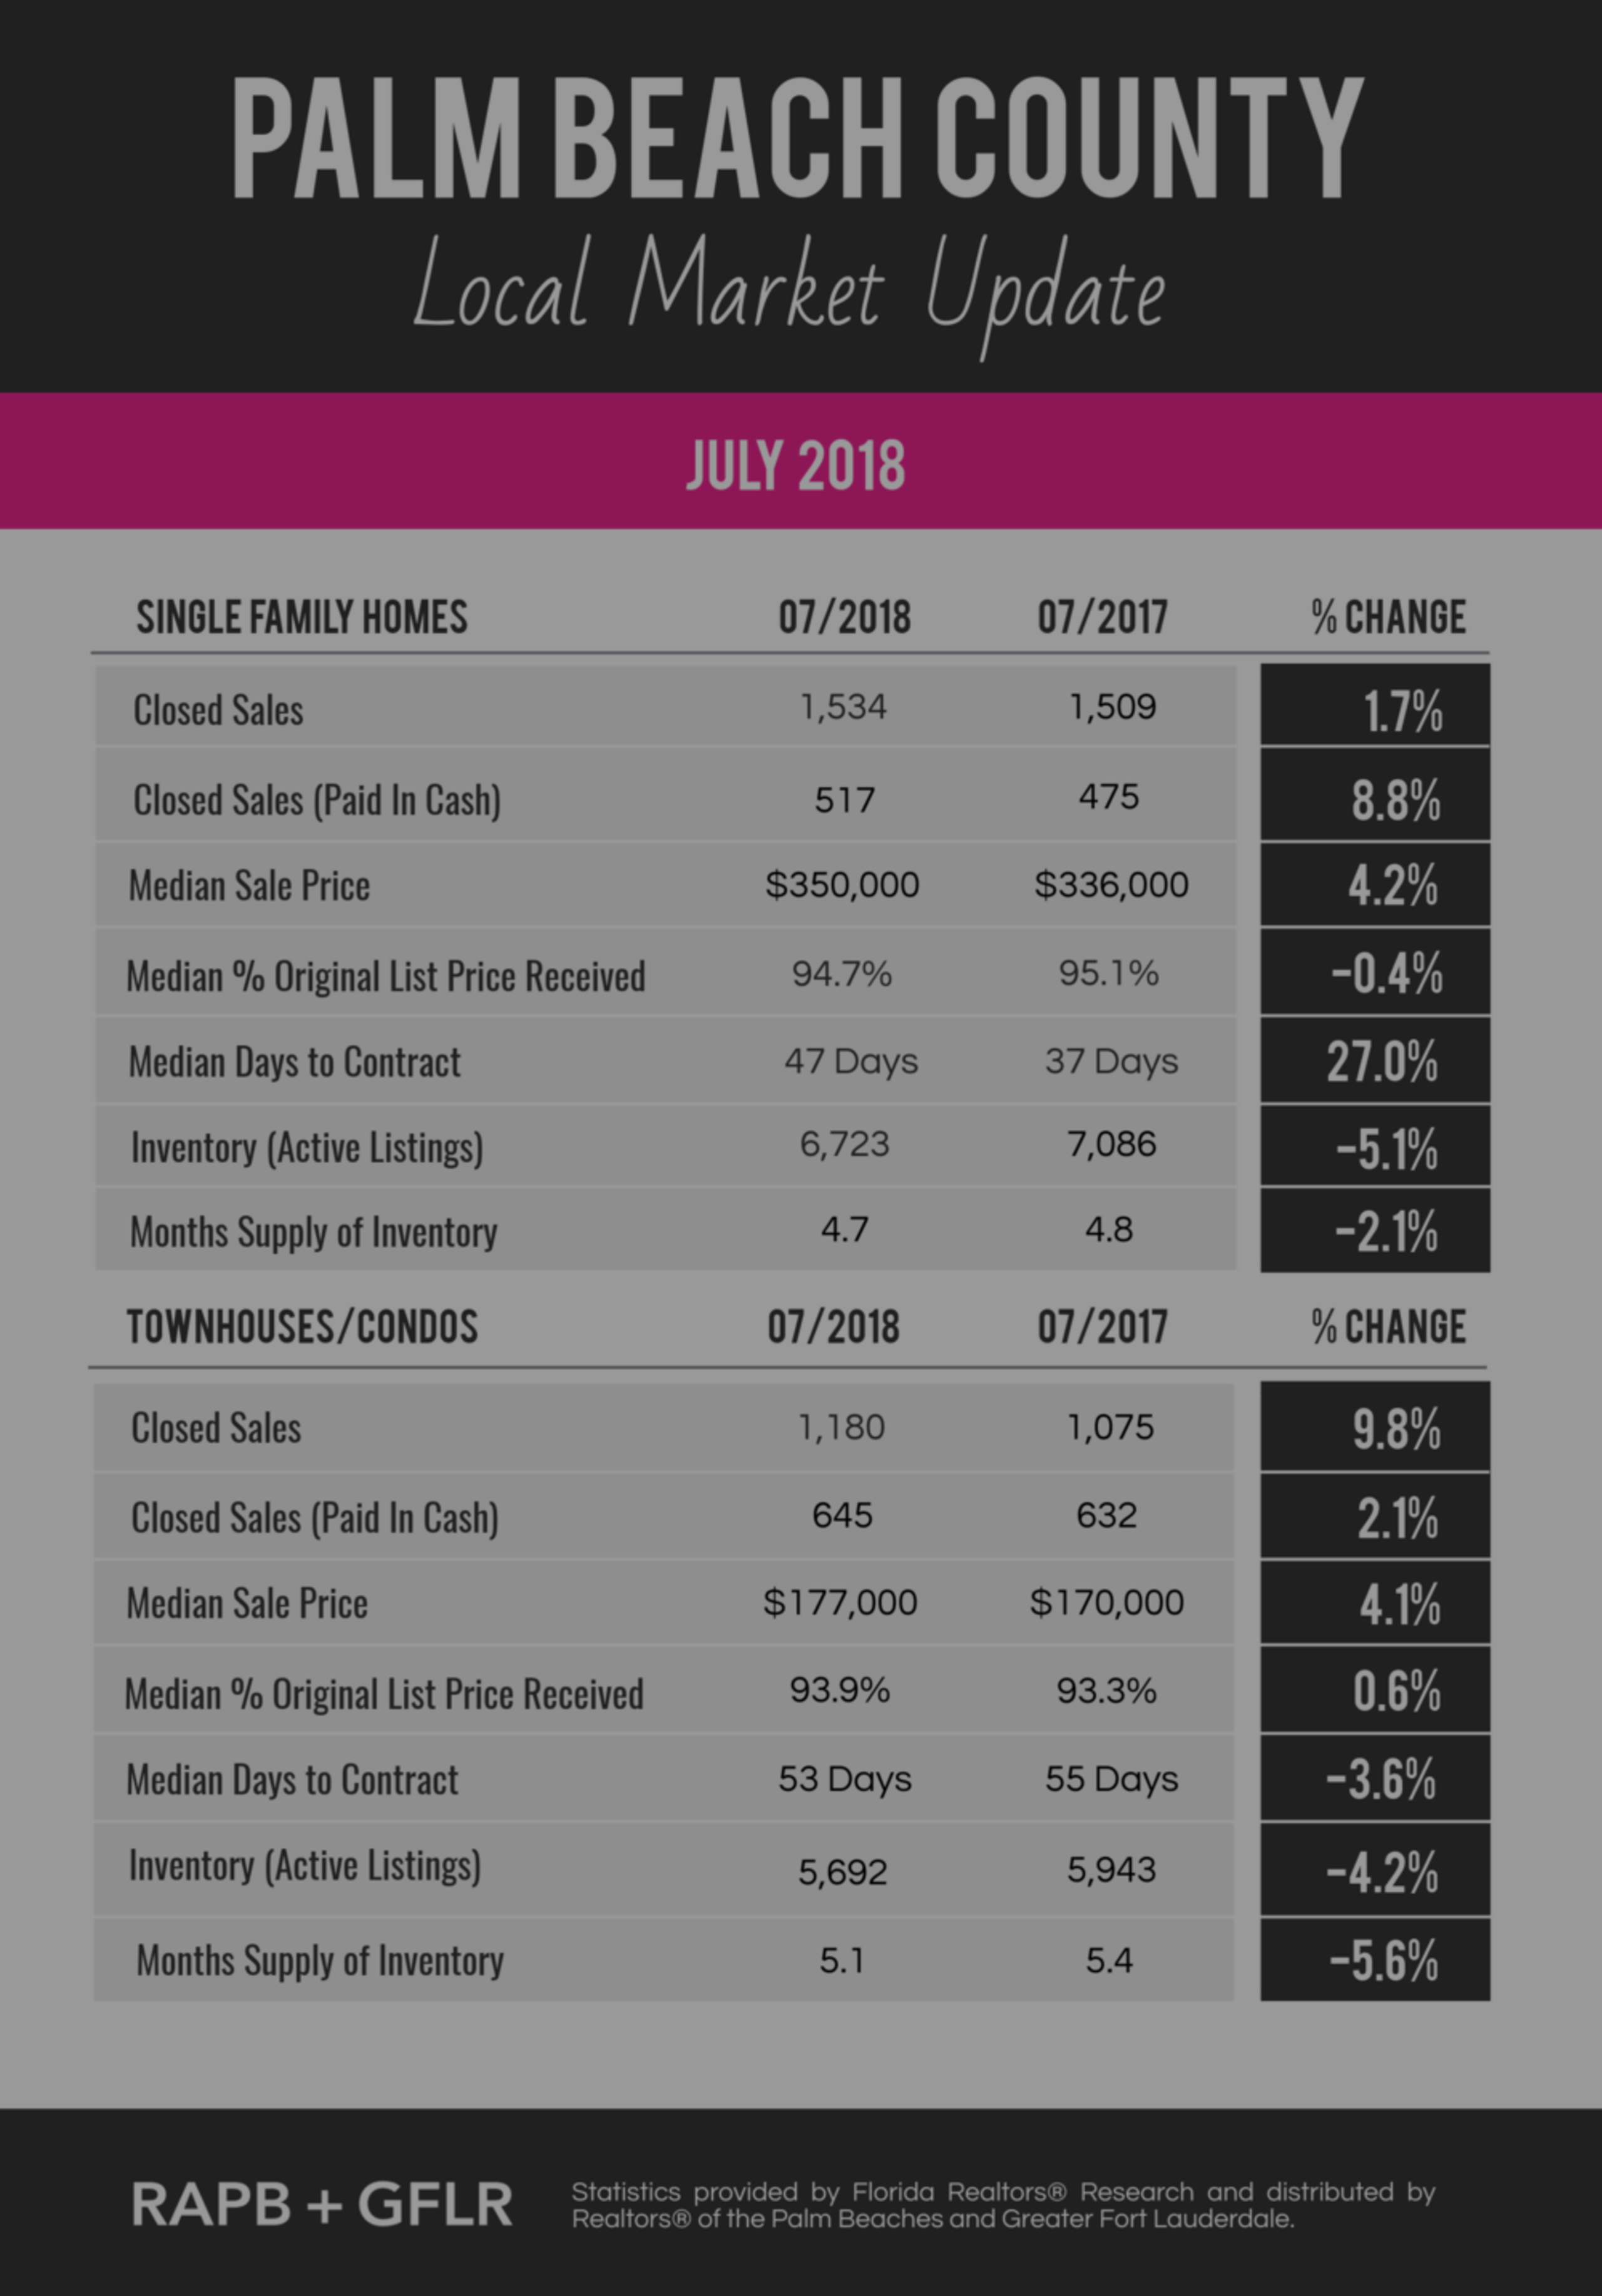 Palm Beach County Market Update for July 2018